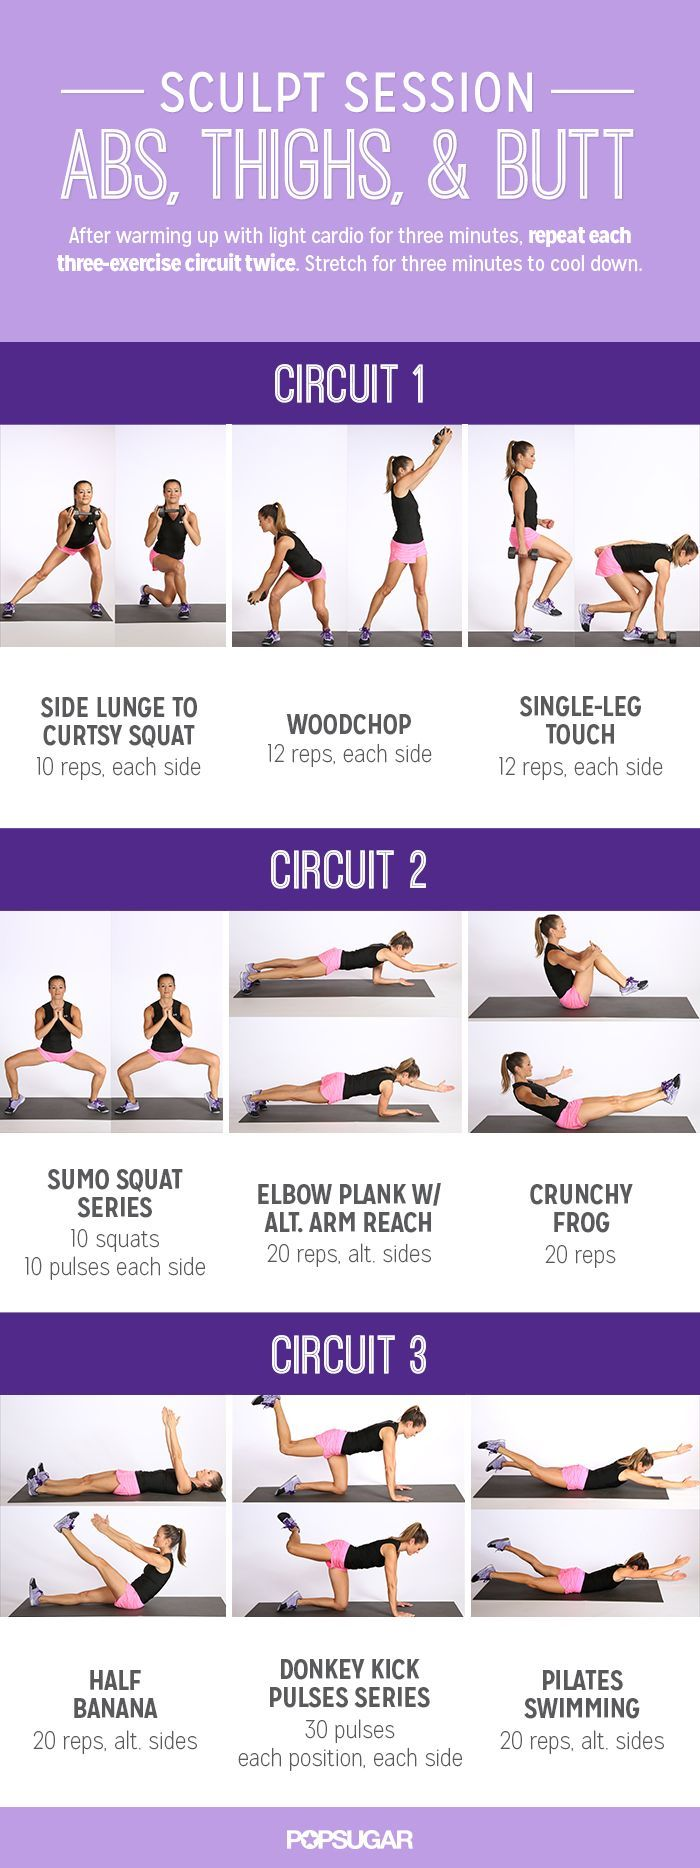 Printable Workout: Sculpt Session For Abs and Glutes